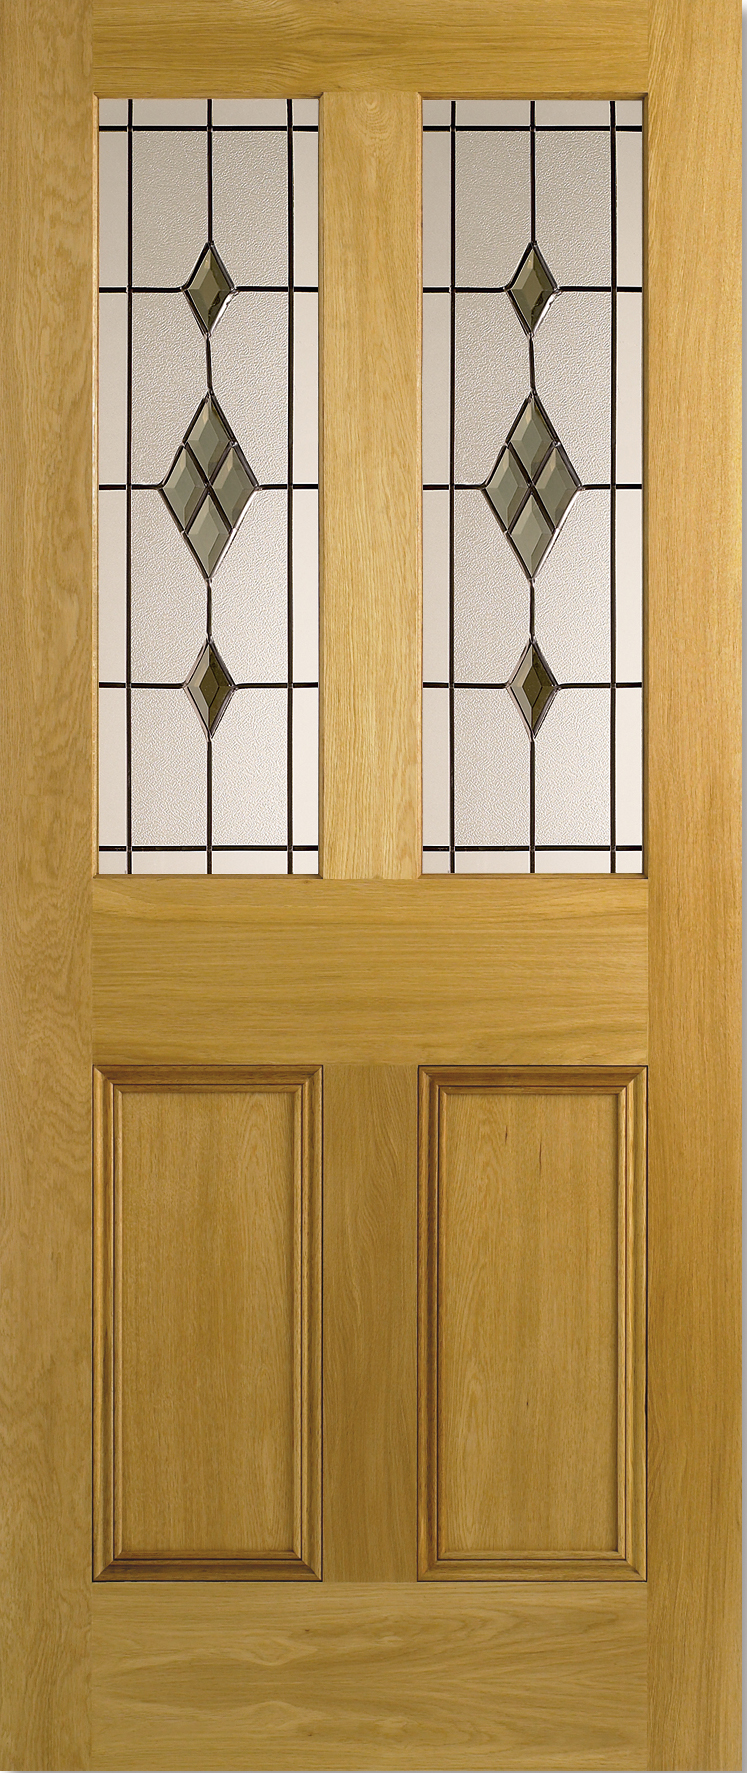 Period interior panels doors and stained glass doors available oak malton smoked planetlyrics Images